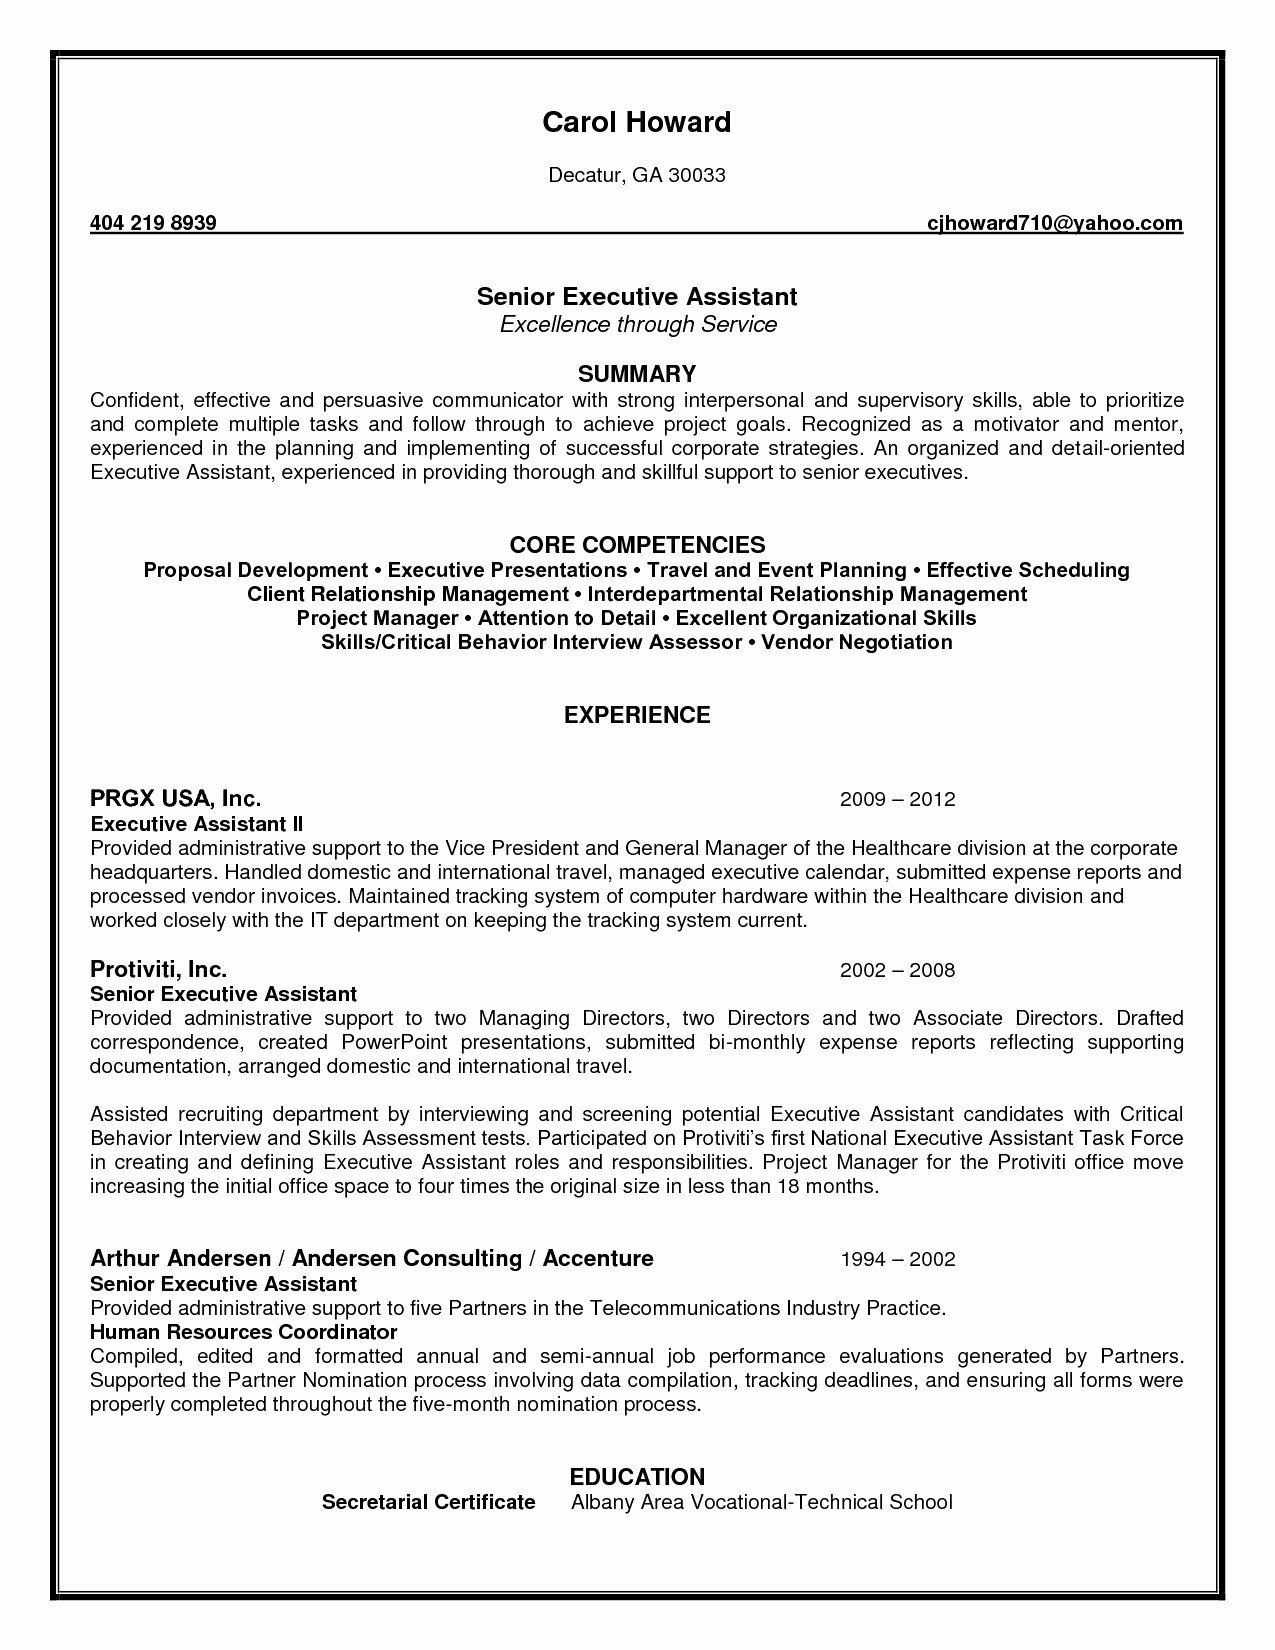 Resume Template for Senior Management - 23 Inspirational Executive assistant Resumes